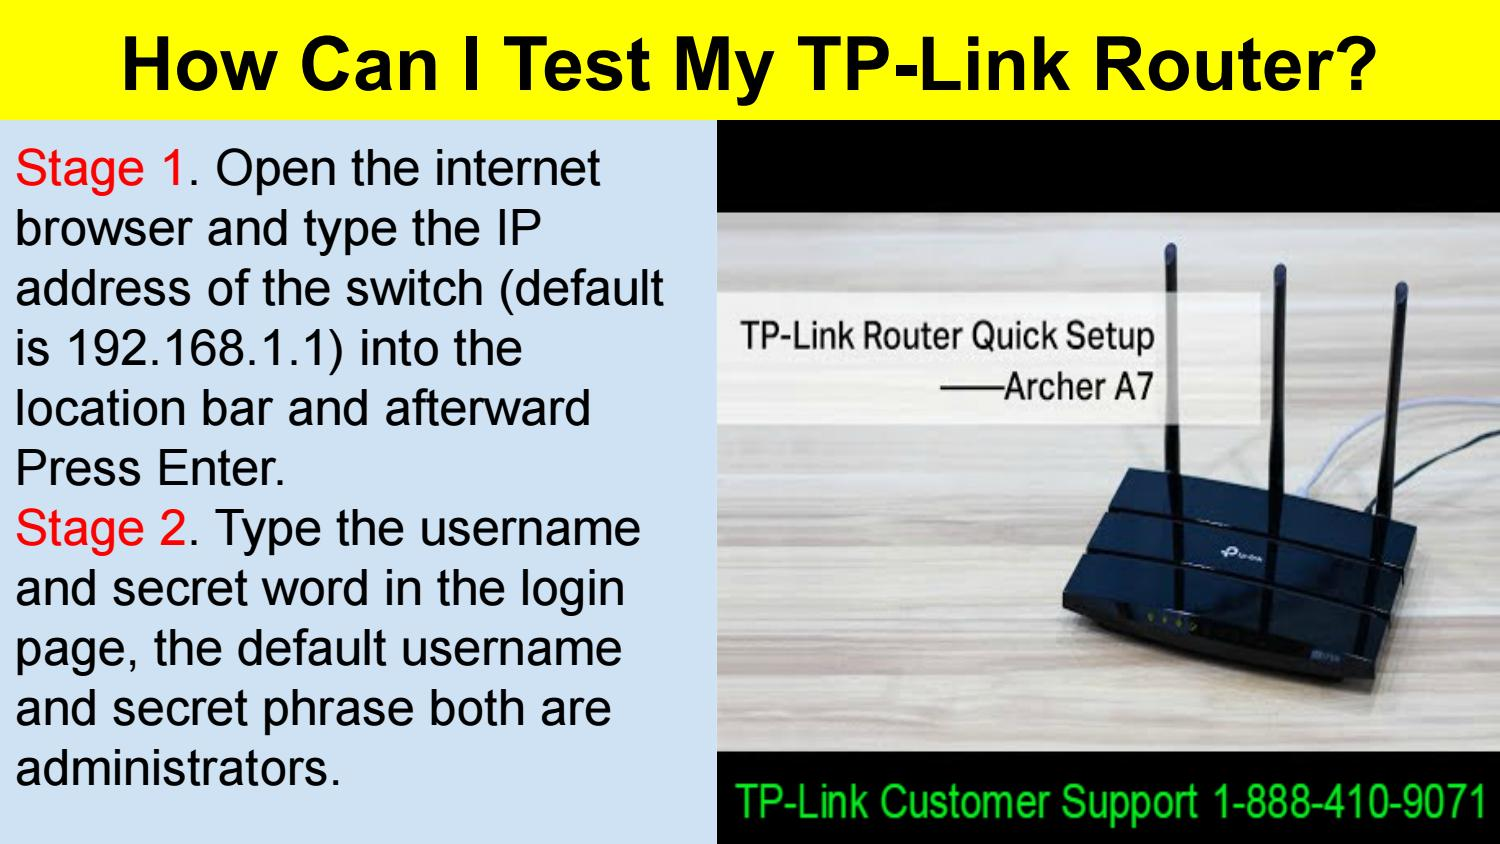 How Do I Boost My Internet Speed With Tp Link Router Tp Link Support 1 888 410 9071 By Markhabit121 Issuu